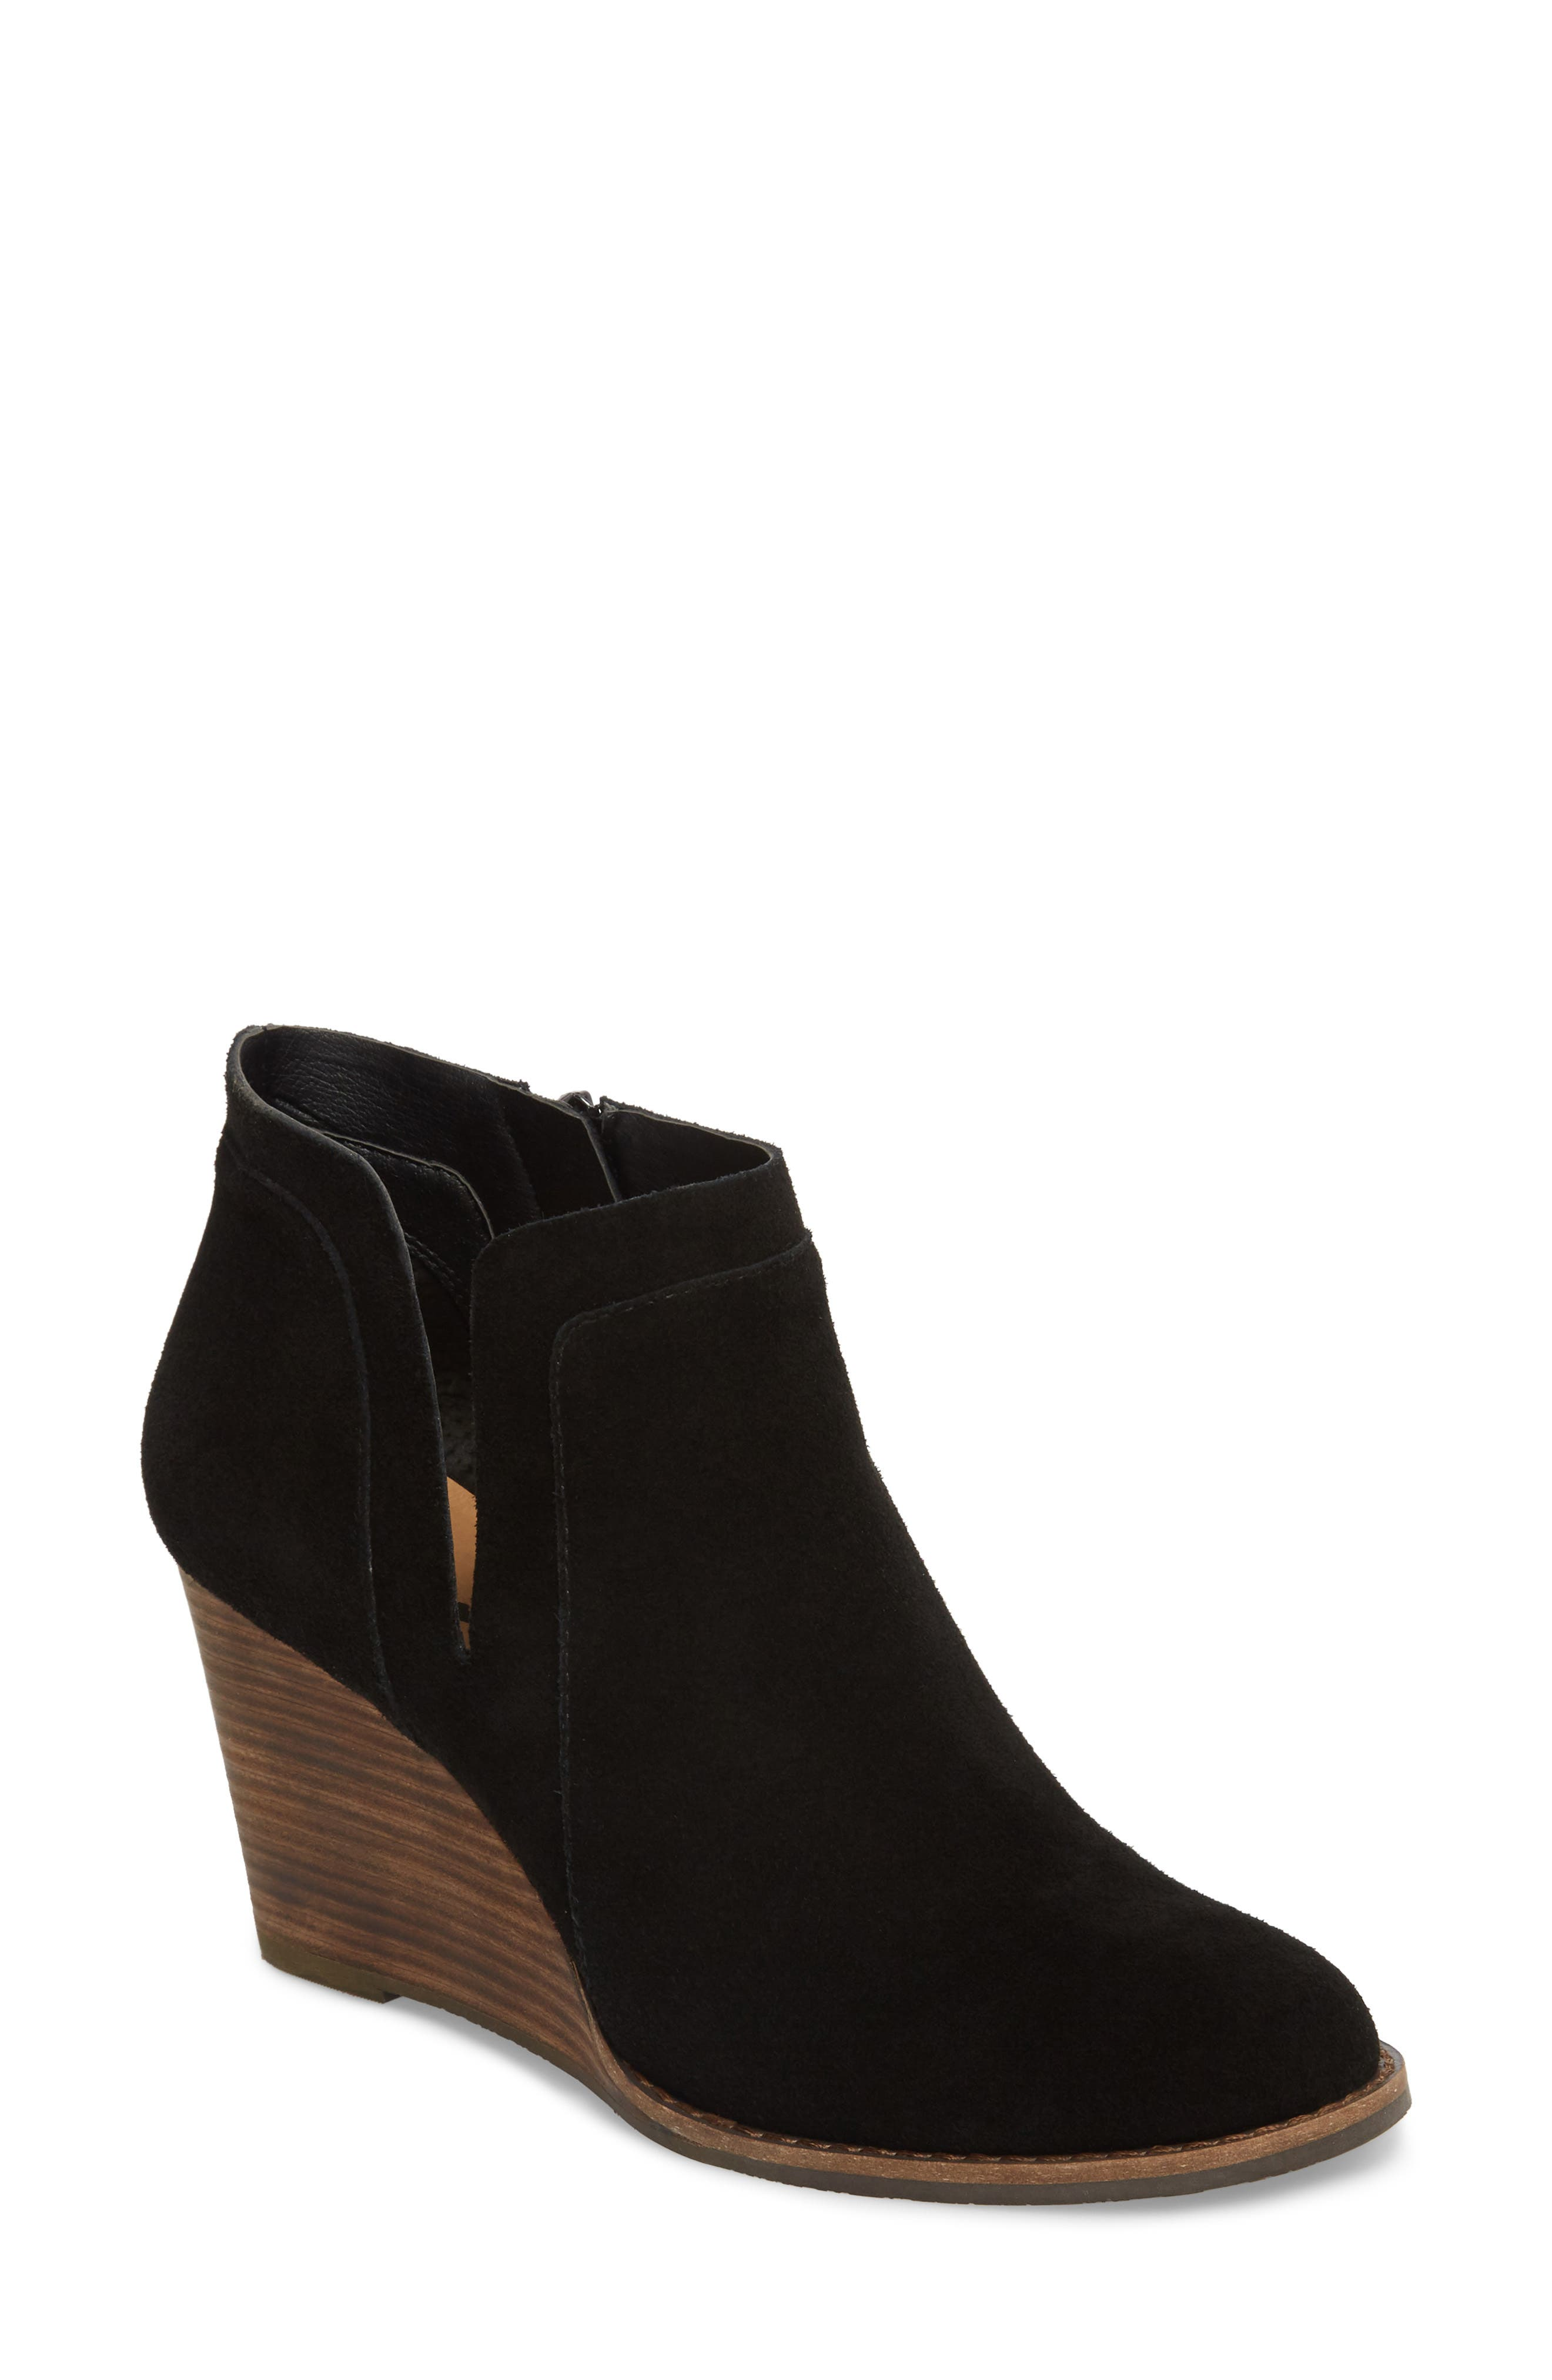 Lucky Brand Yabba Wedge Bootie, Black